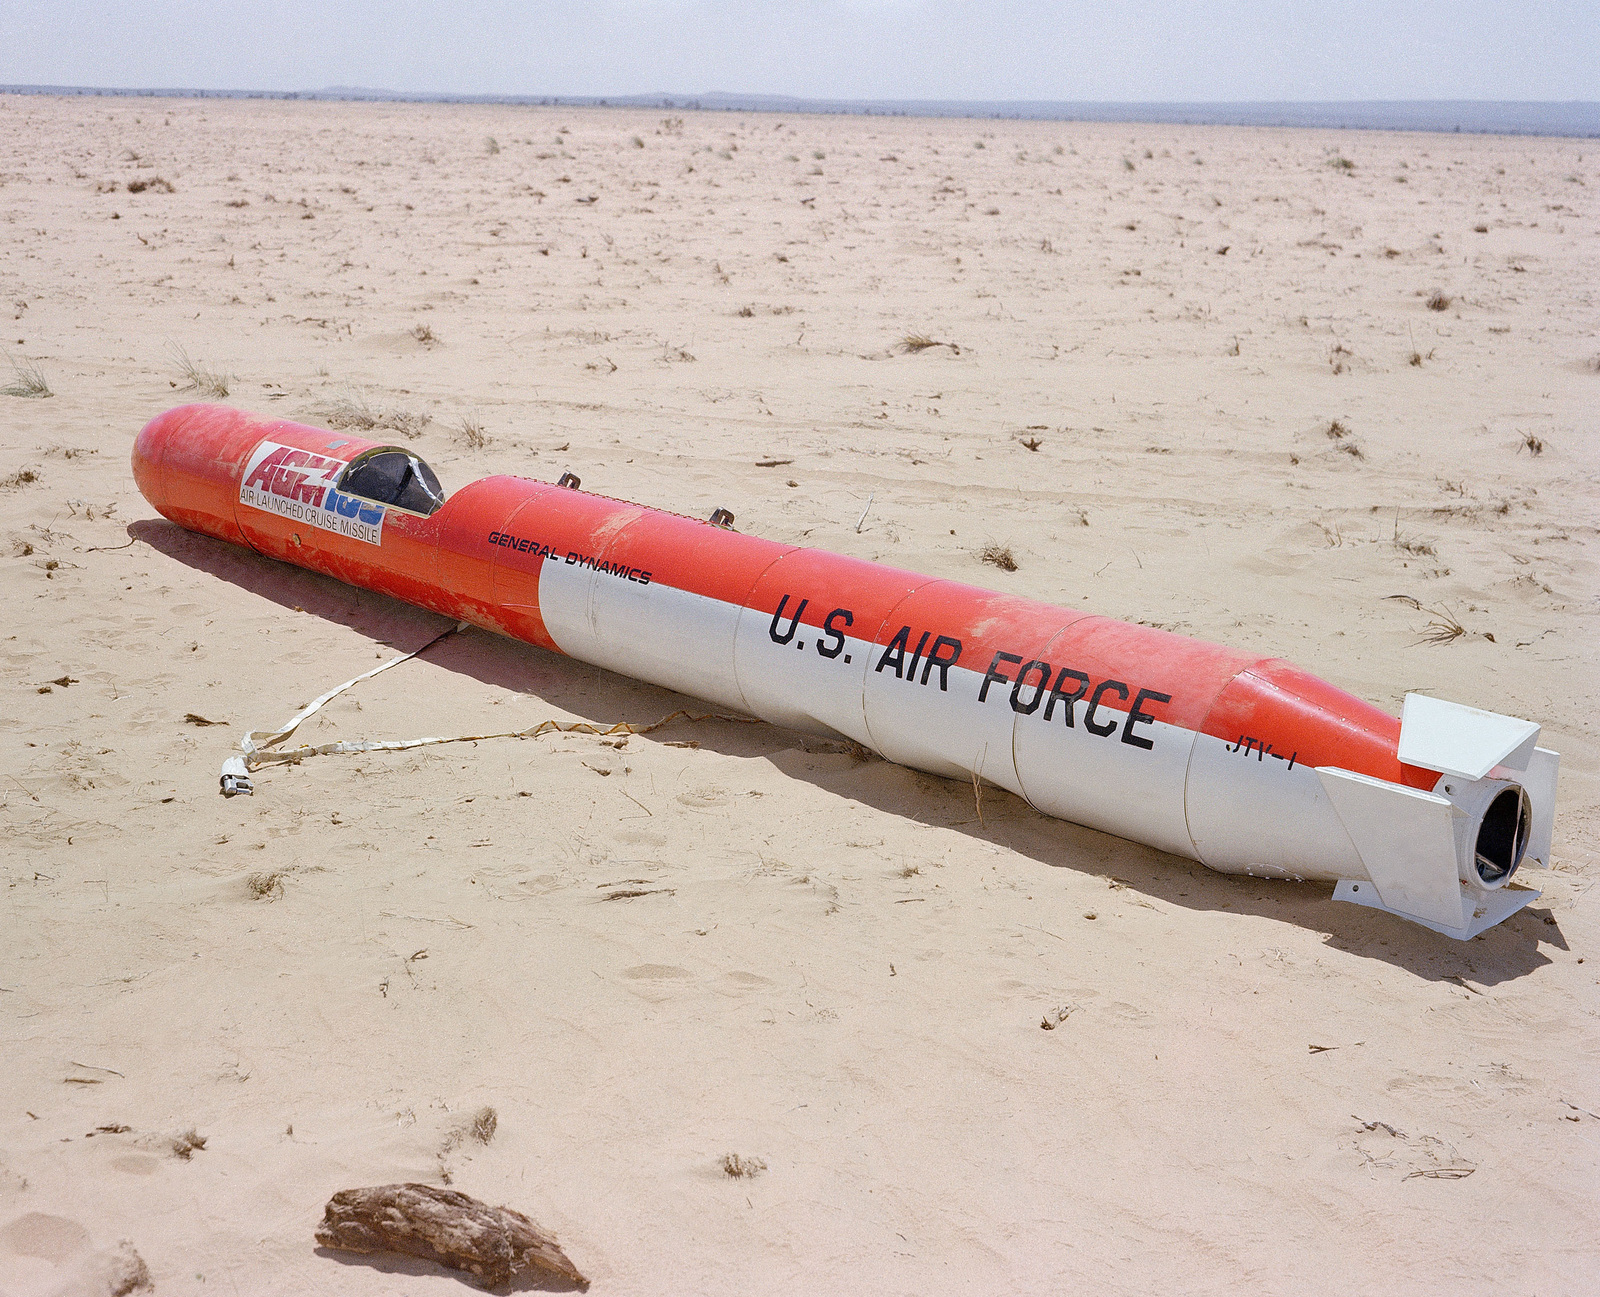 A rear view of an AGM-109 Tomahawk air-launched cruise missile on the ground after the impact